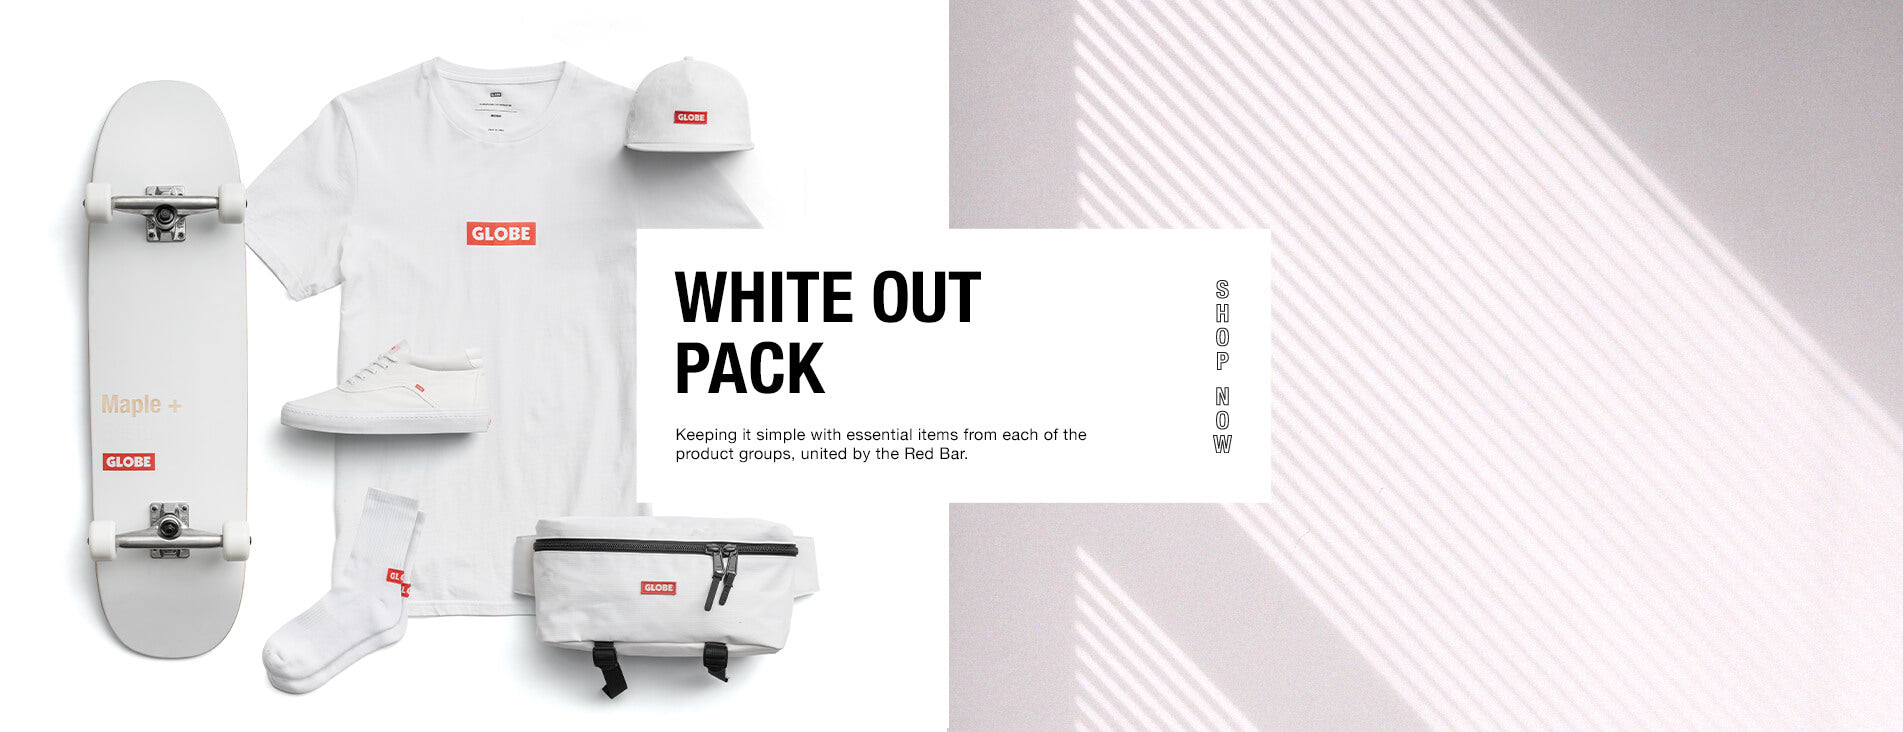 WHITE OUT PACK